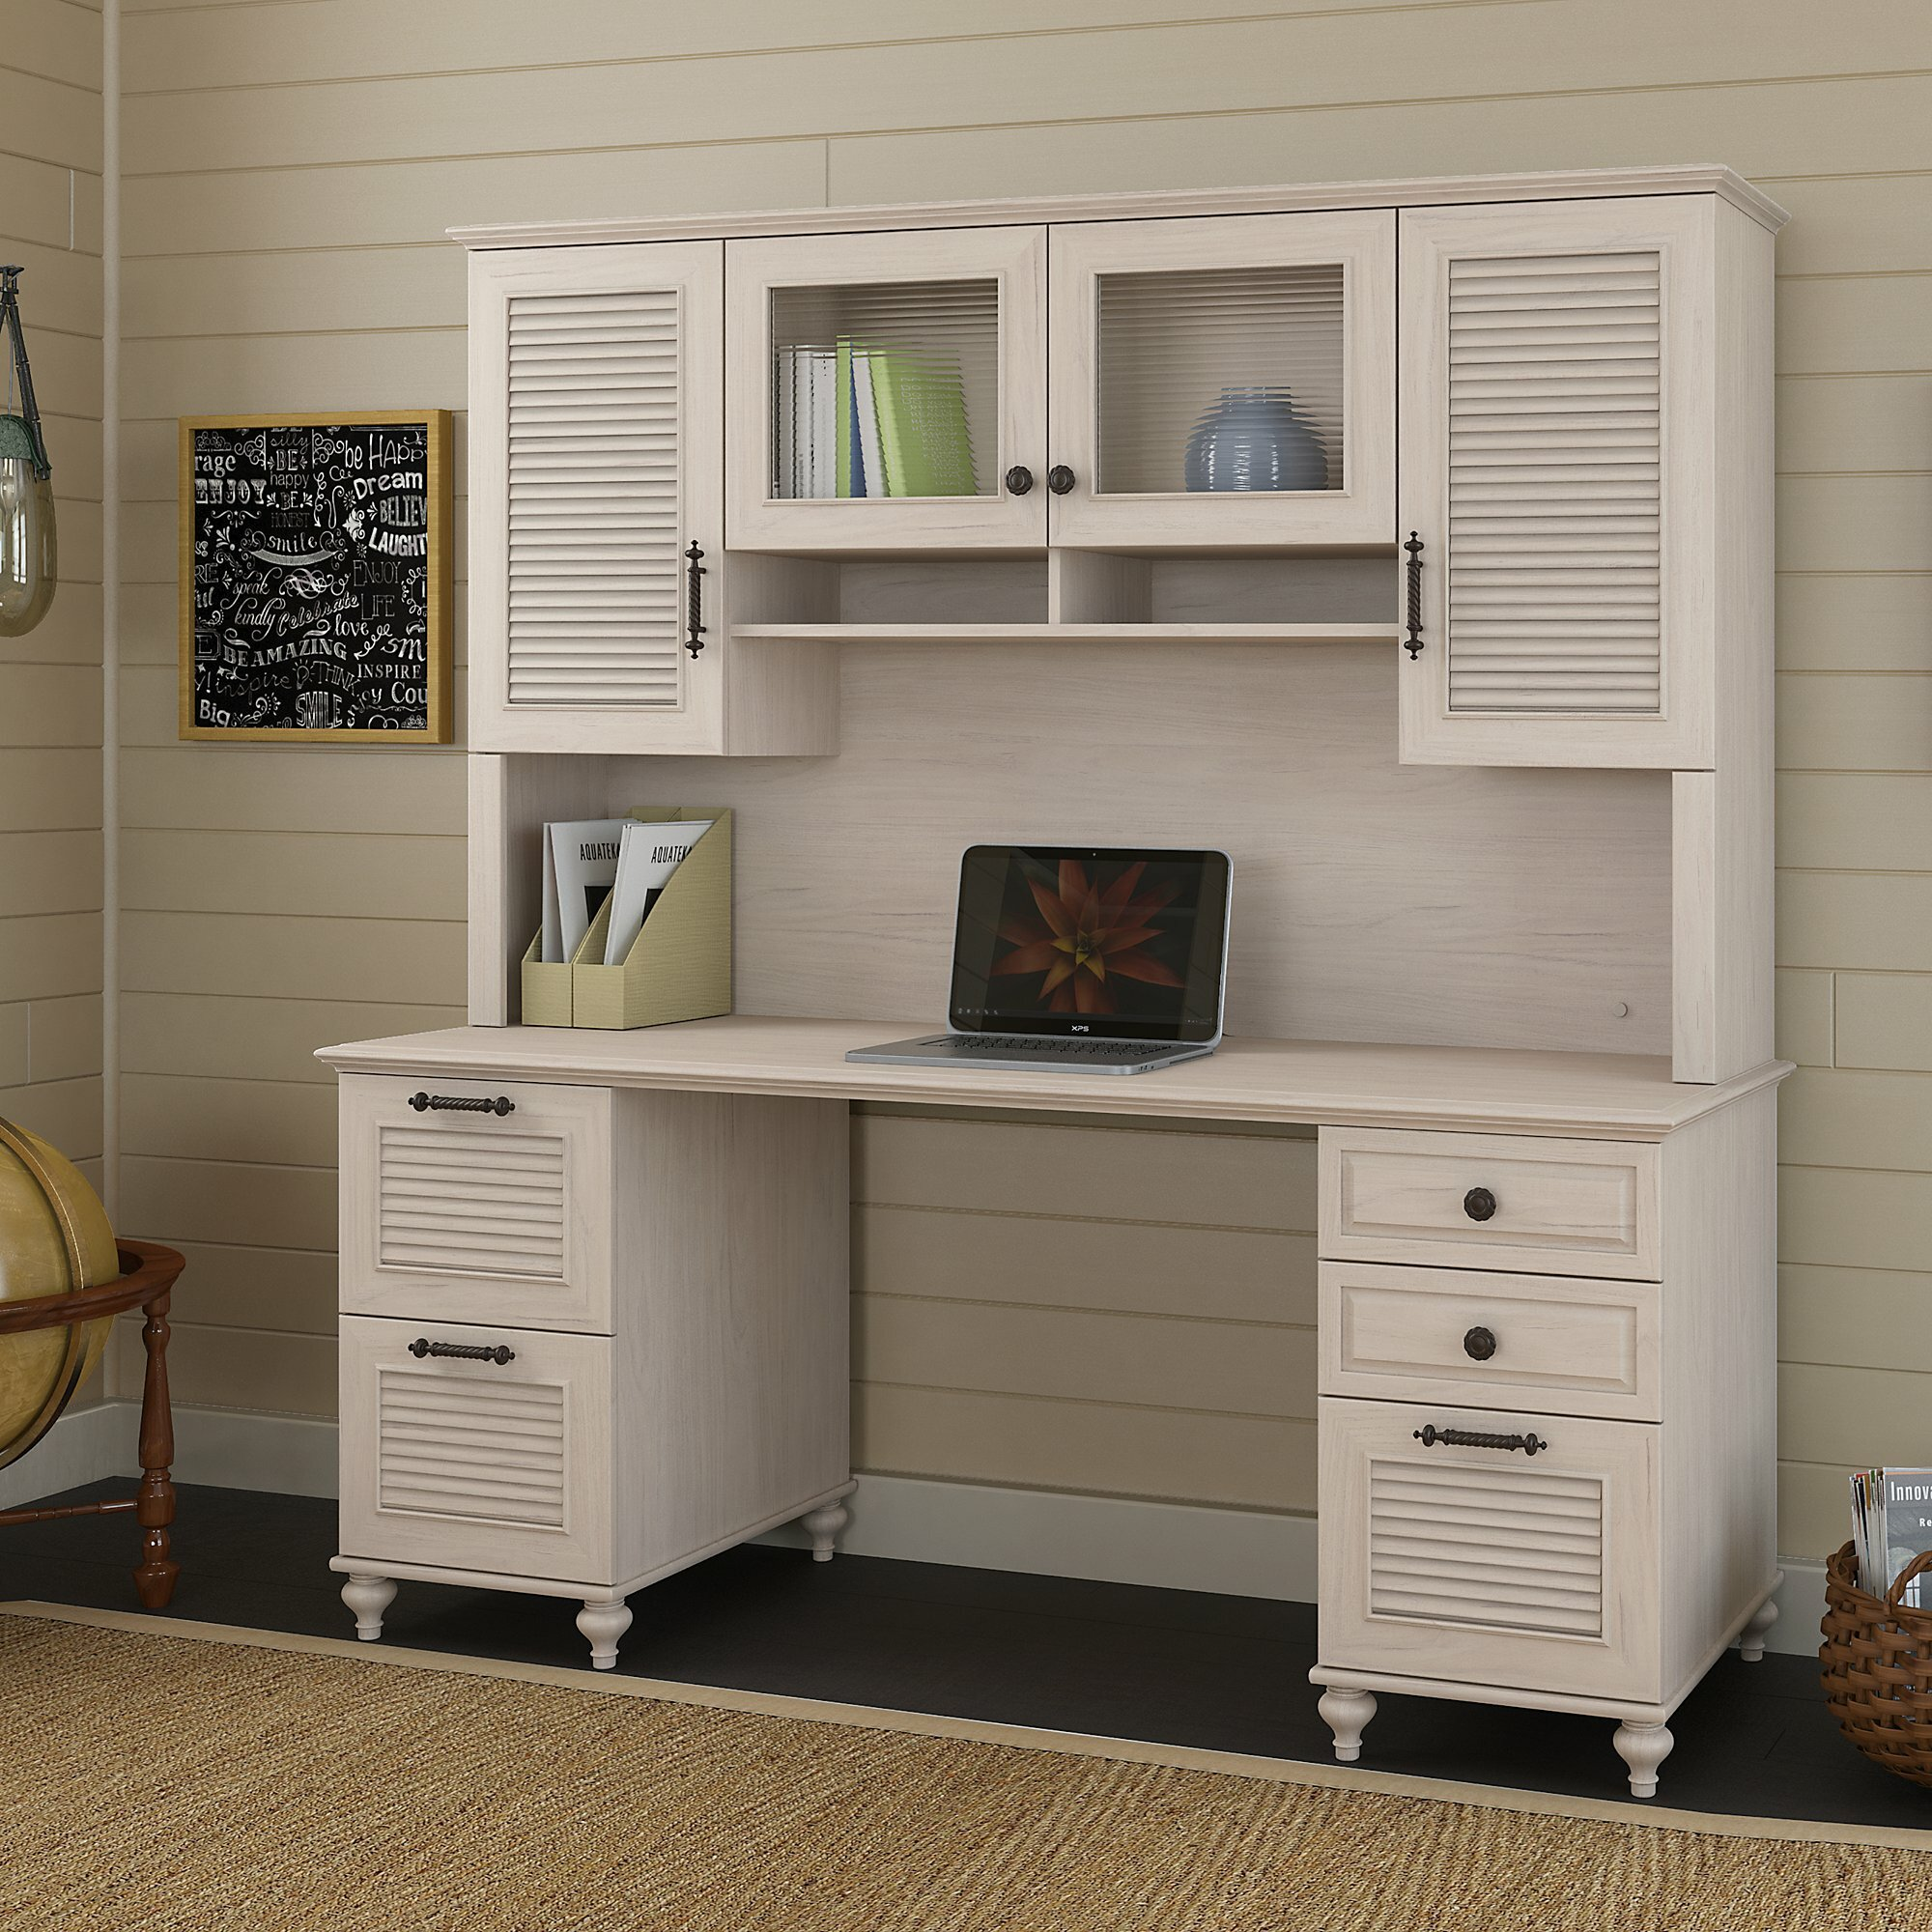 kathy ireland Home by Bush Furniture Volcano Dusk Lateral File Cabinet in Driftwood Dreams